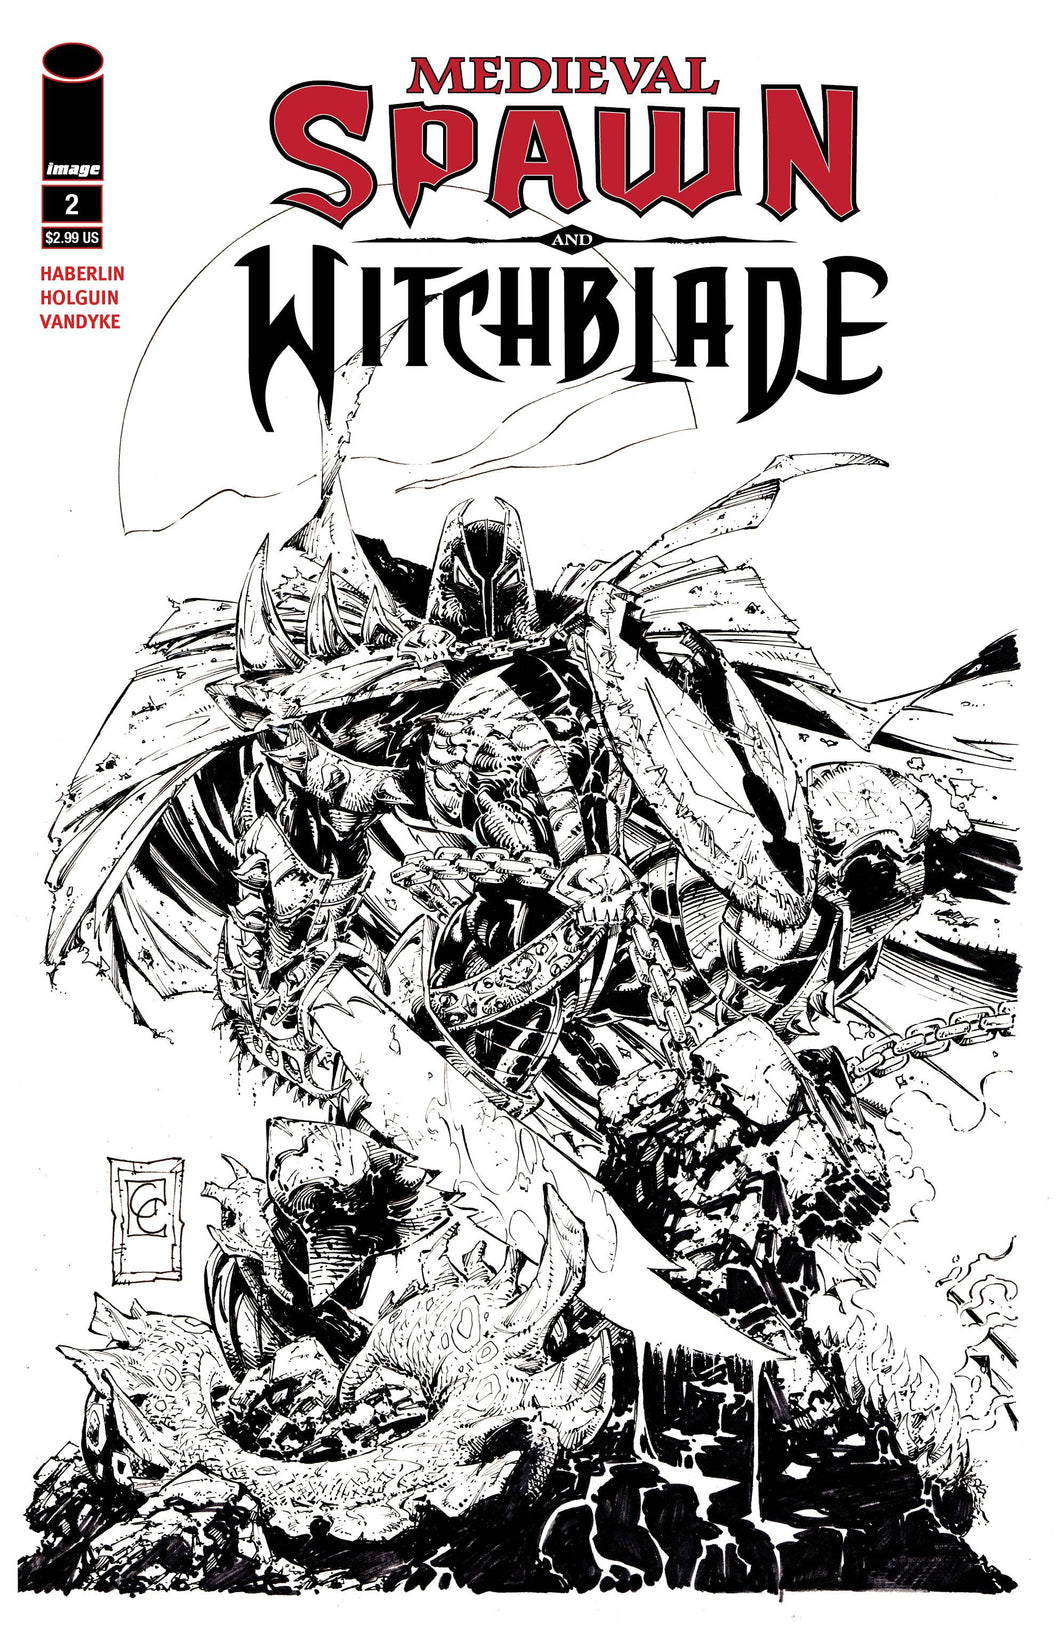 MEDIEVAL SPAWN WITCHBLADE #2 (OF 4) CVR C B&W GREG CAPULLO 06/06